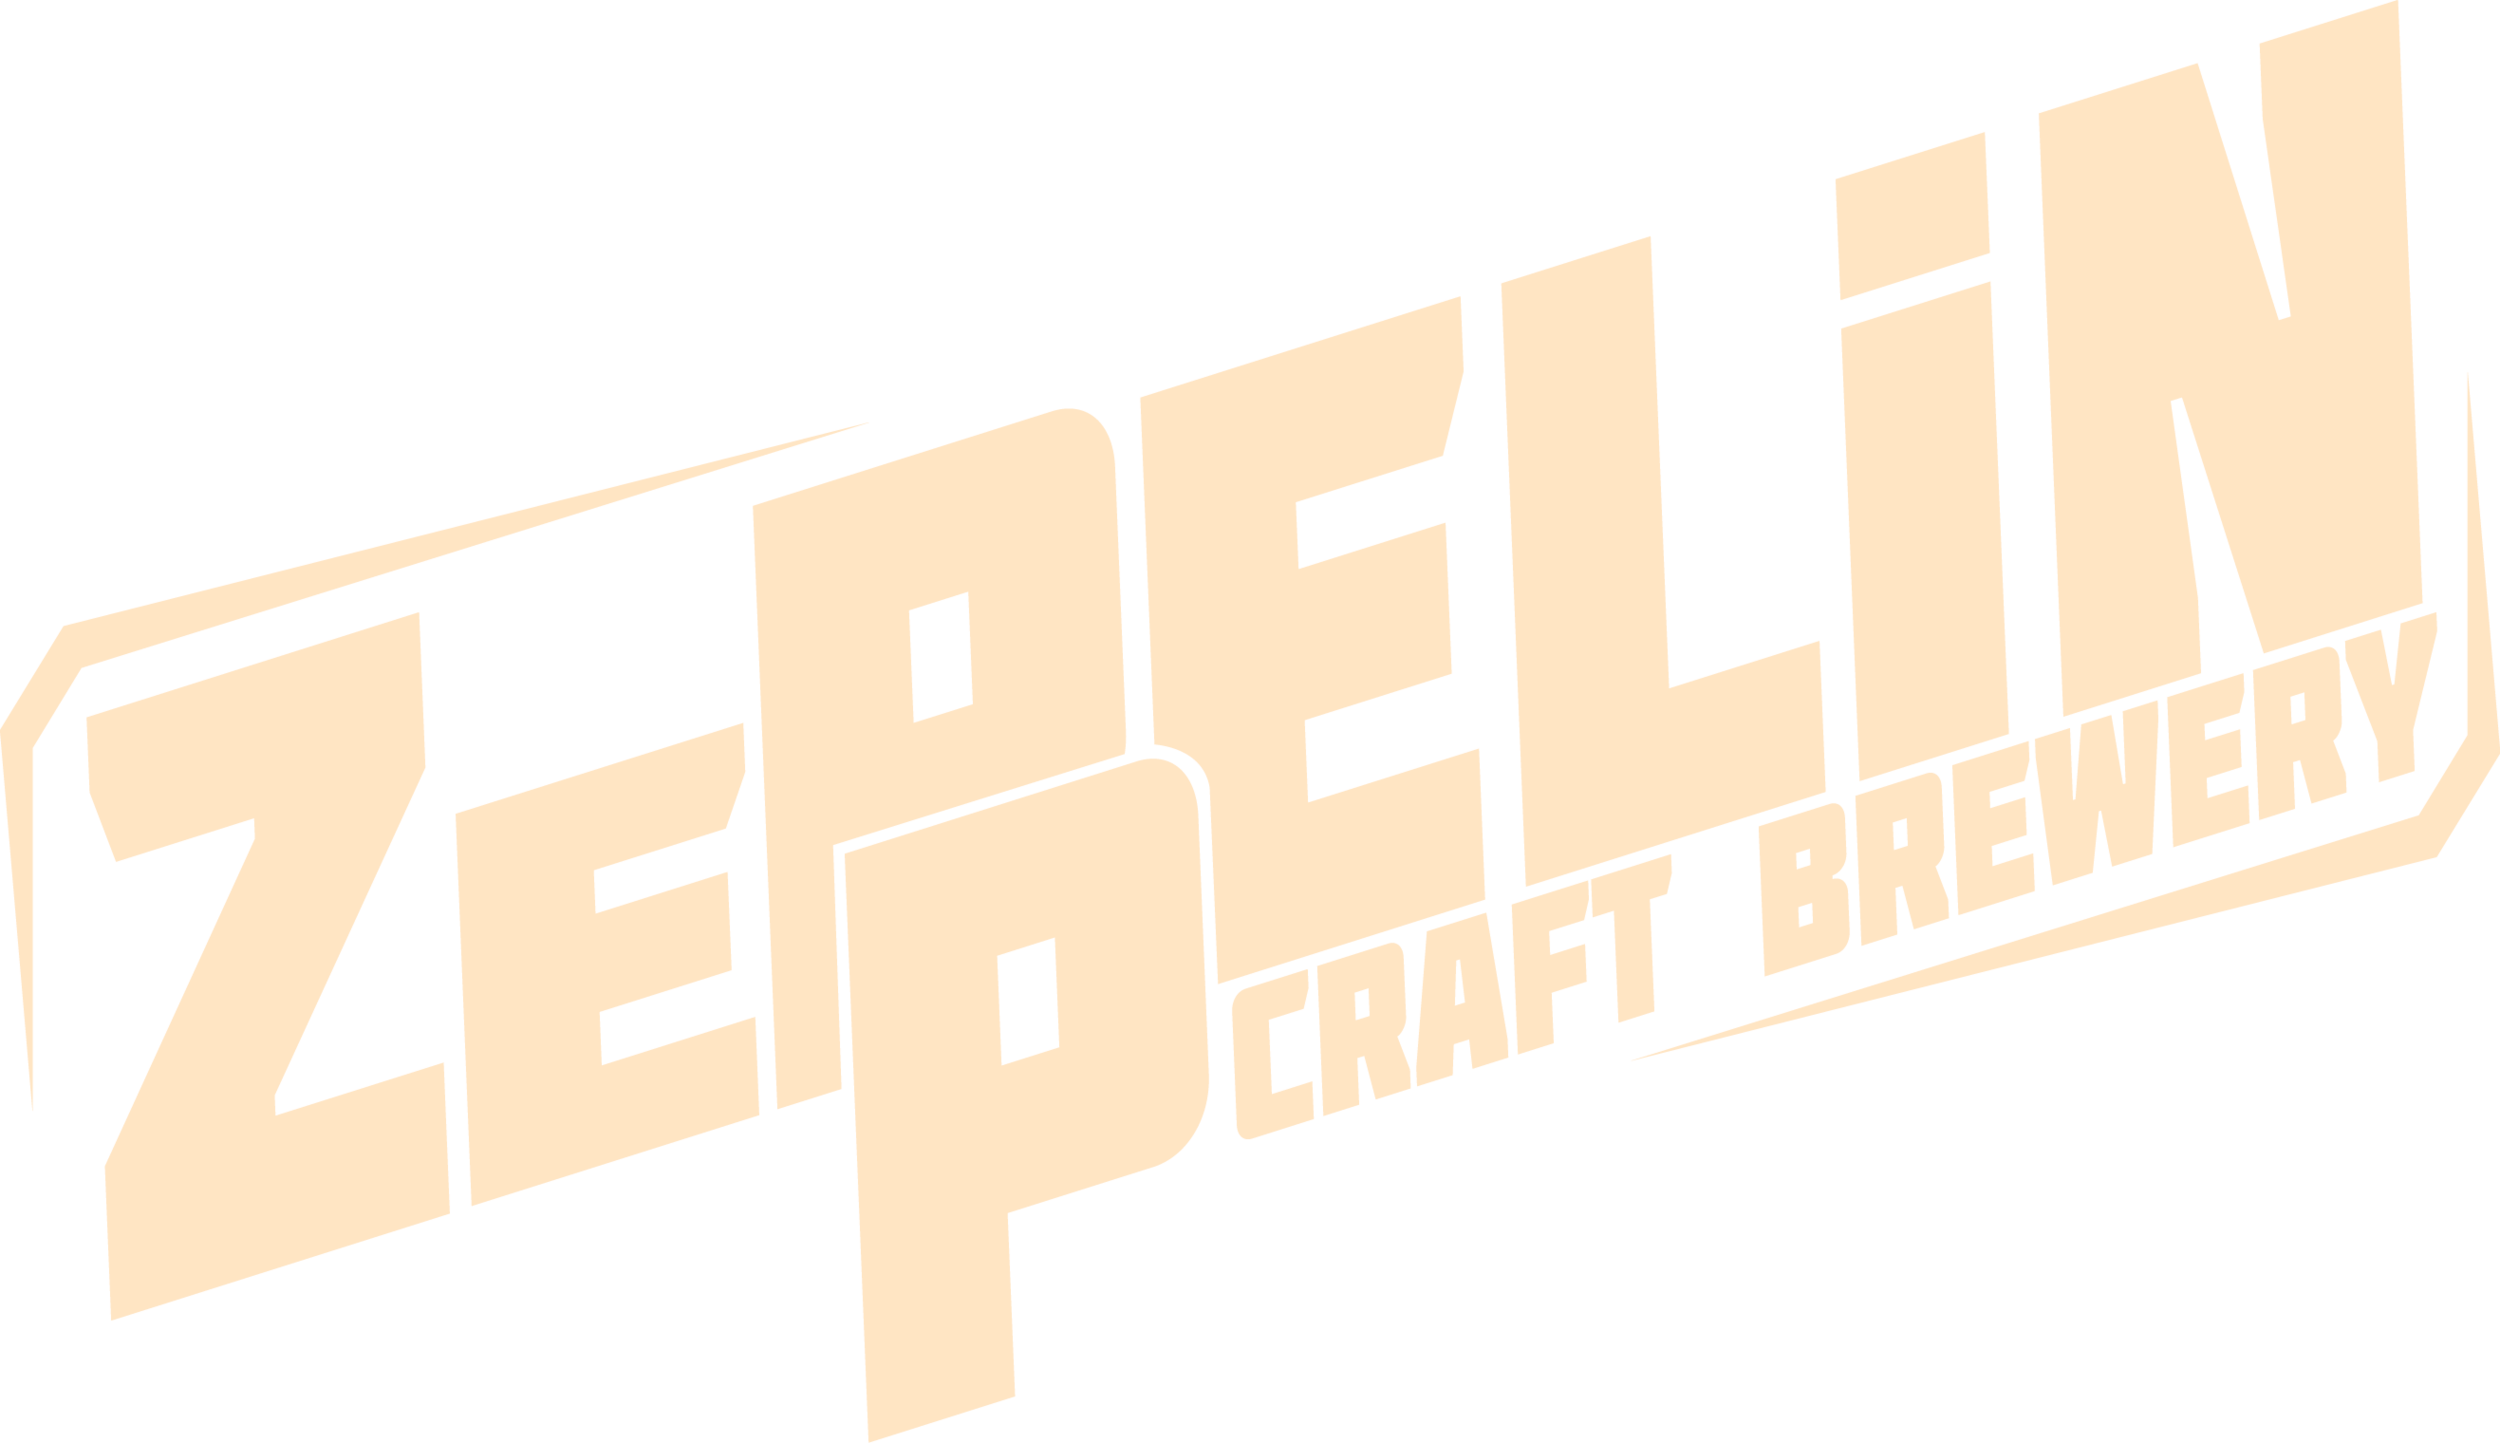 Zeppelin Craft Brewery